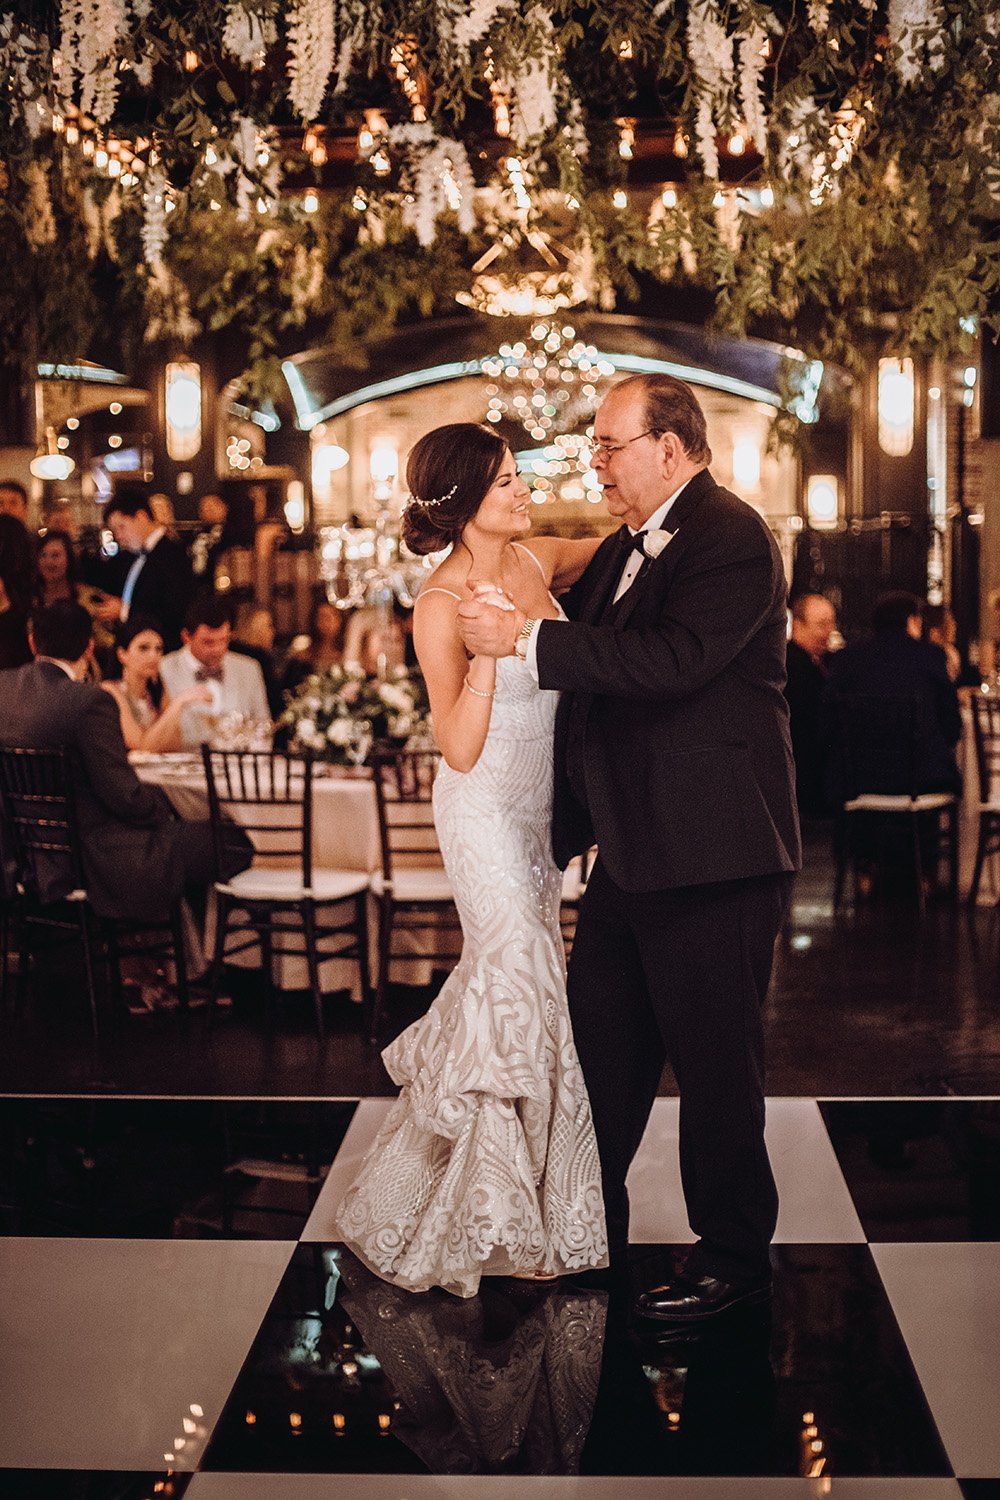 father daughter dance inspiration at wedding reception